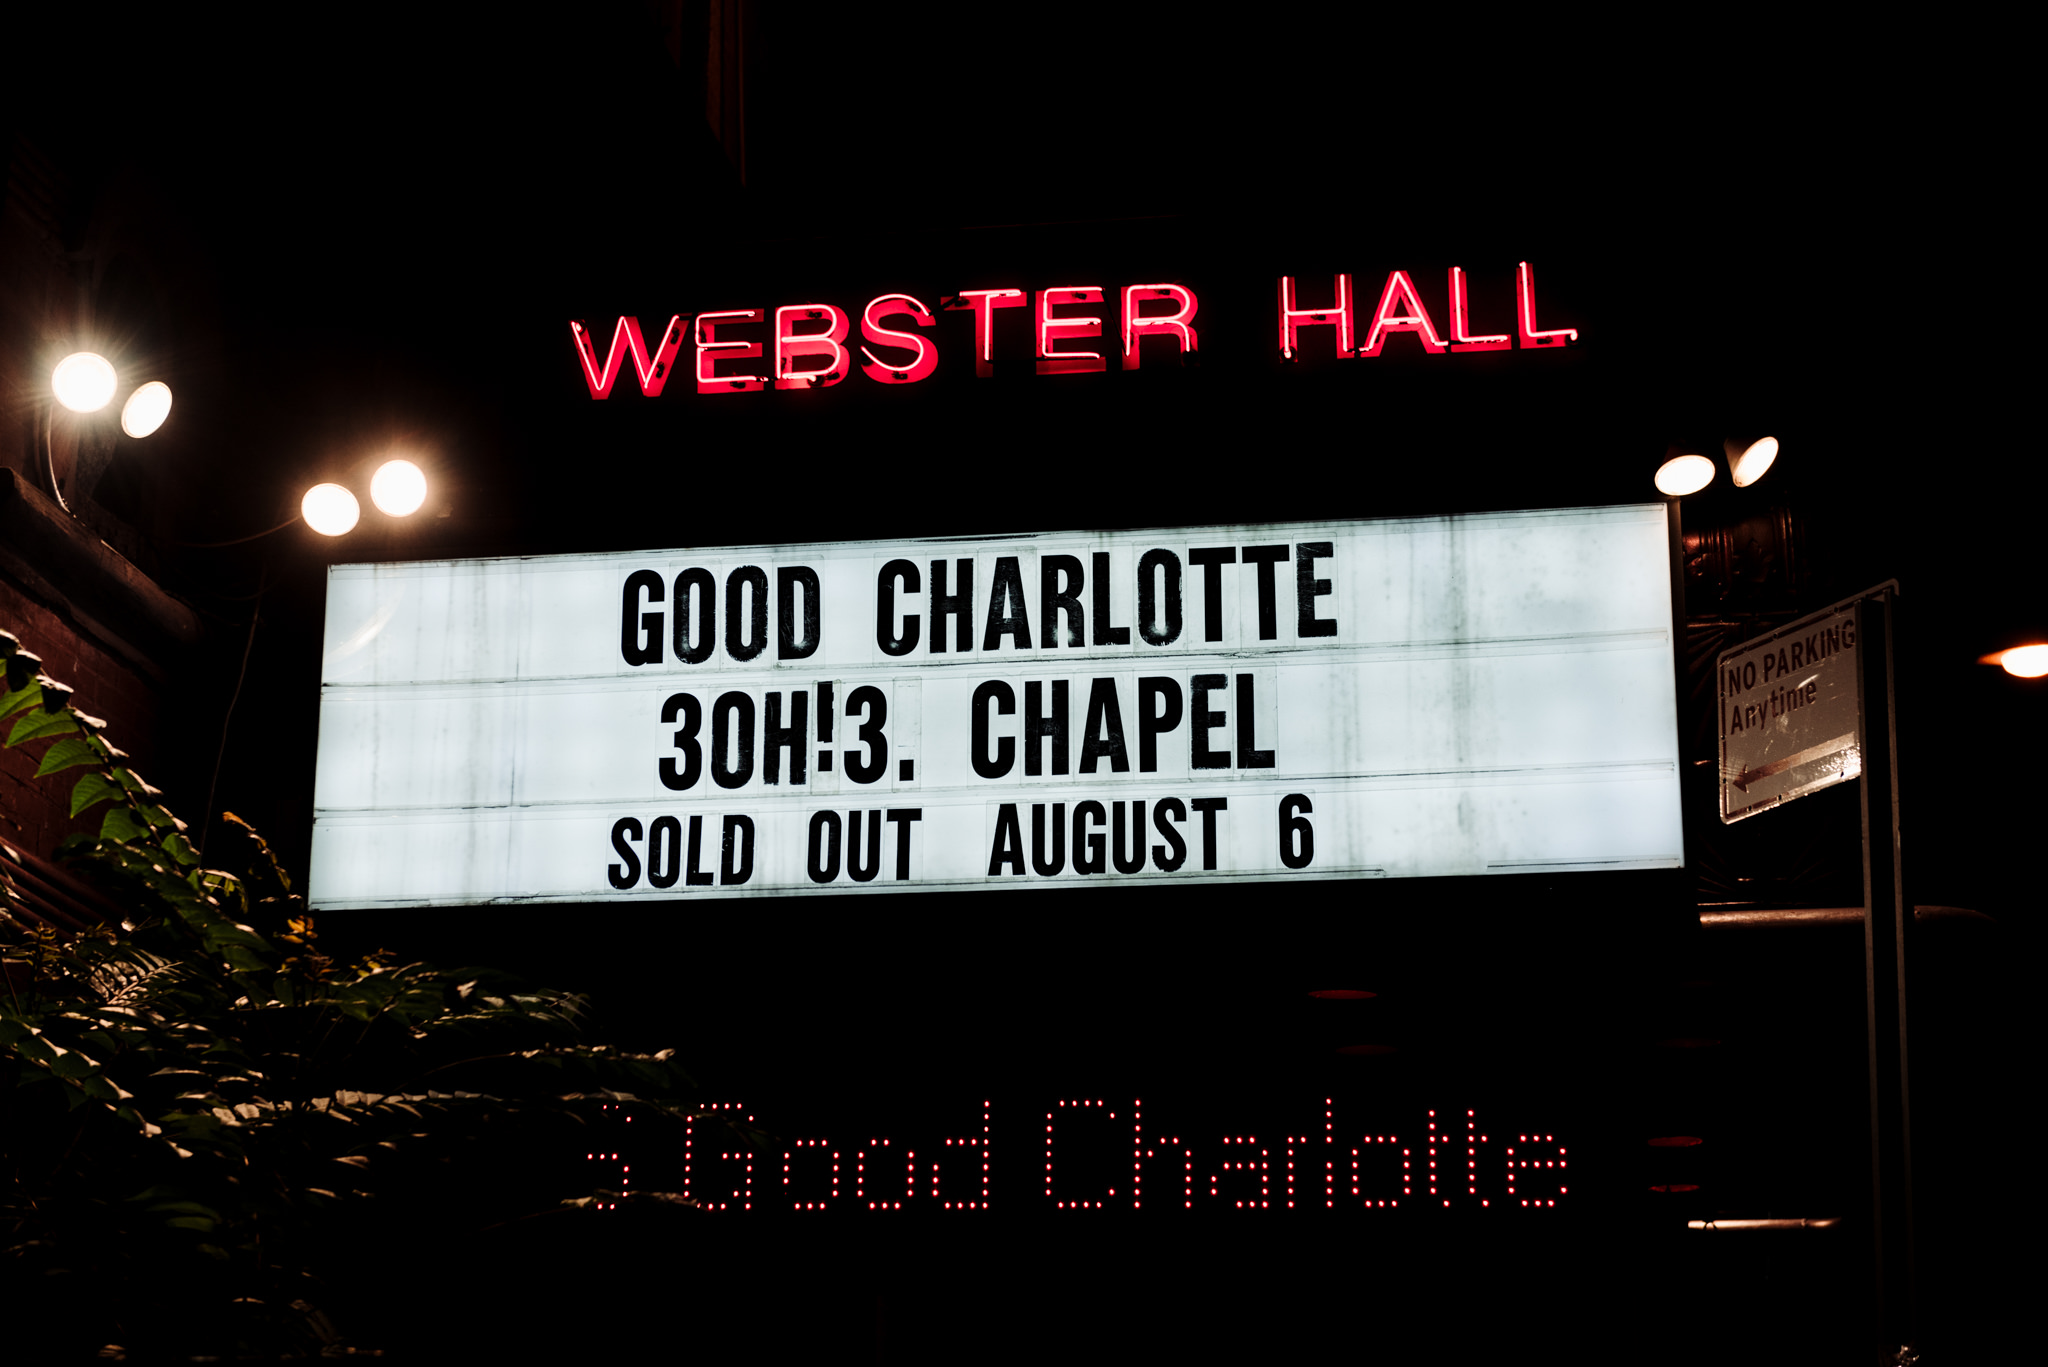 Good-Charlotte-Webster-Hall-Stars-and-Scars-23